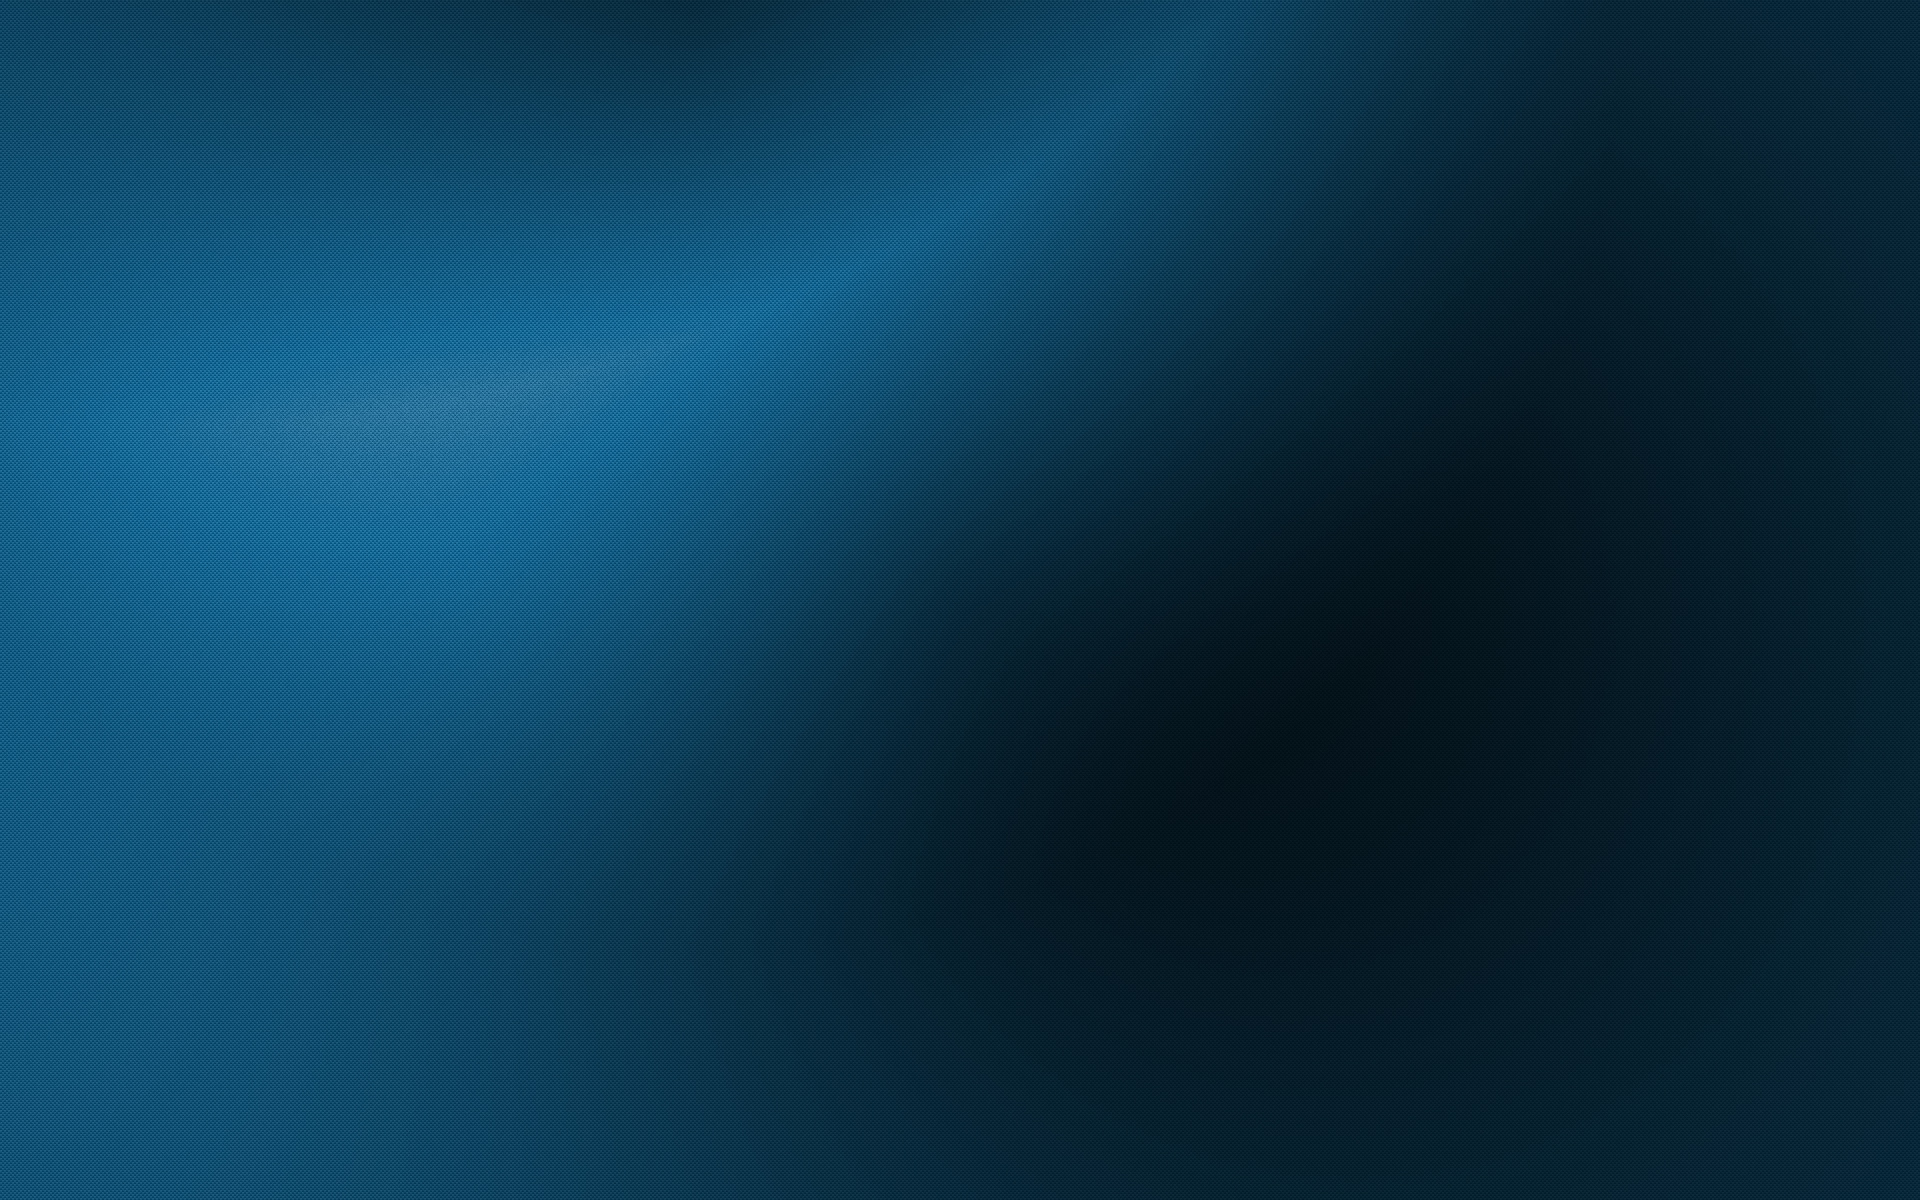 Dark Blue Abstract Wallpaper 1920x1200